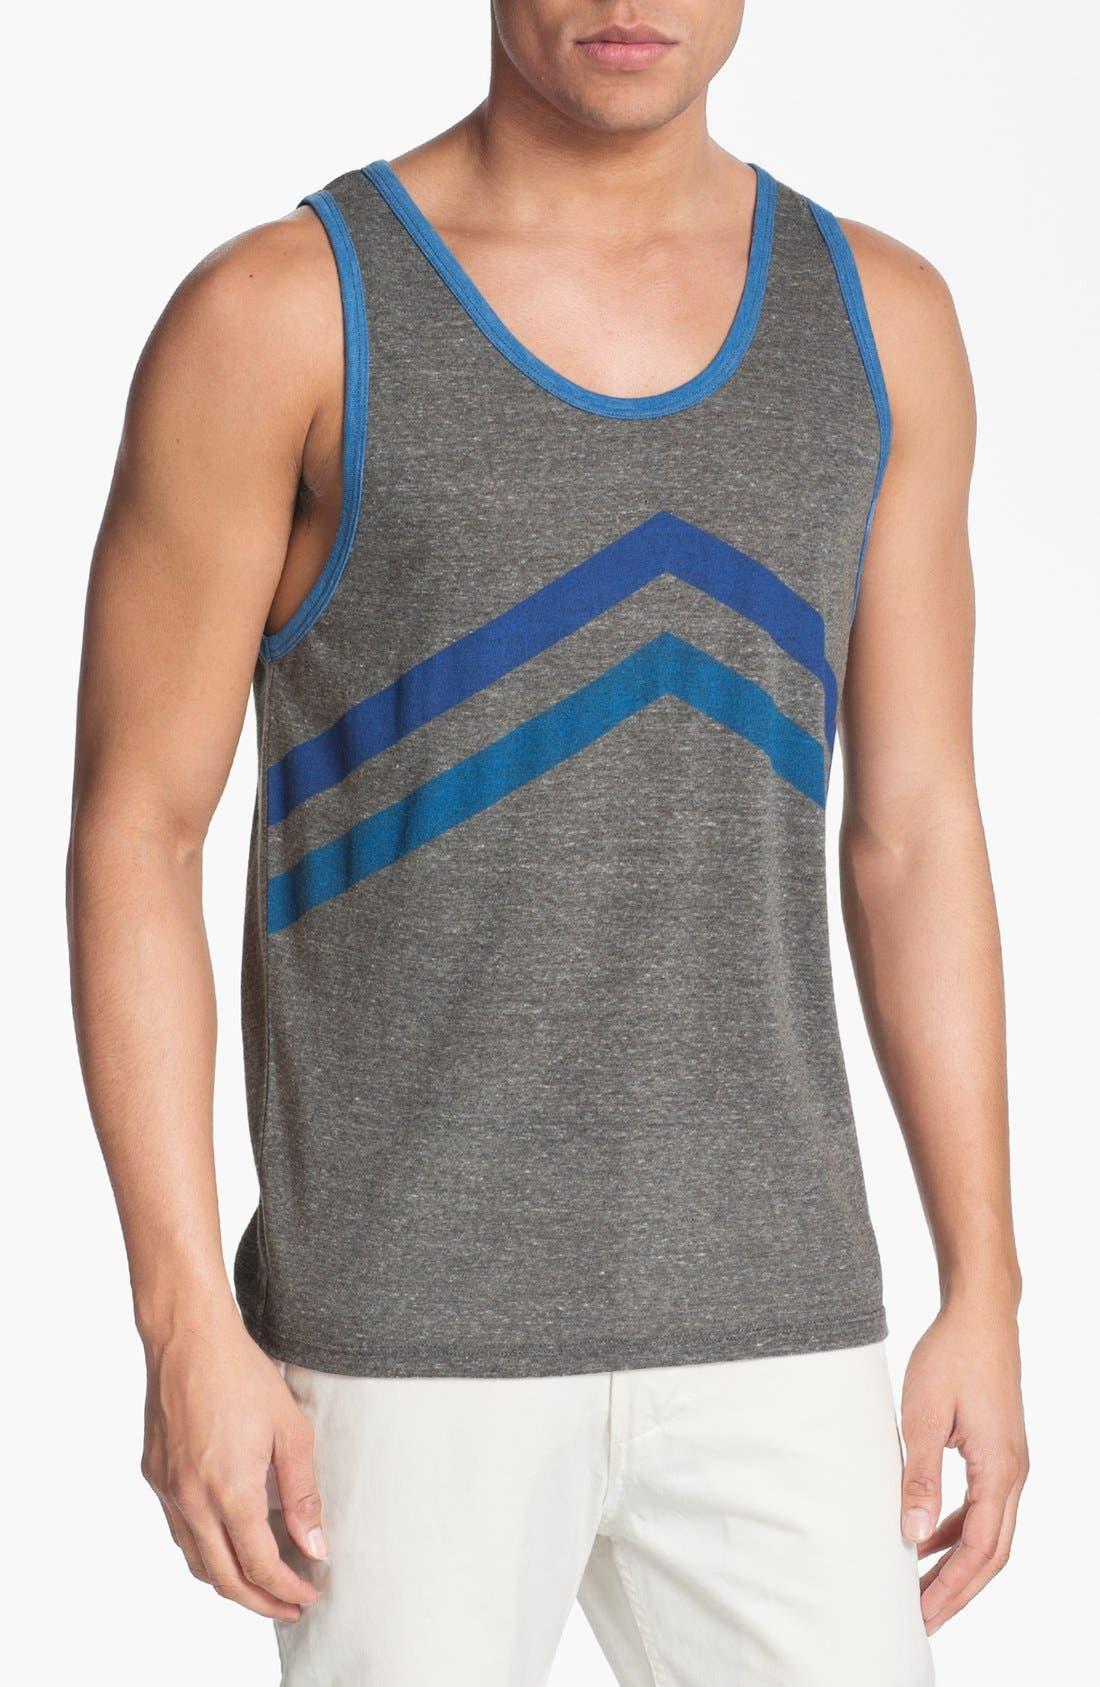 Main Image - Threads for Thought Chevron Stripe Print Tank Top